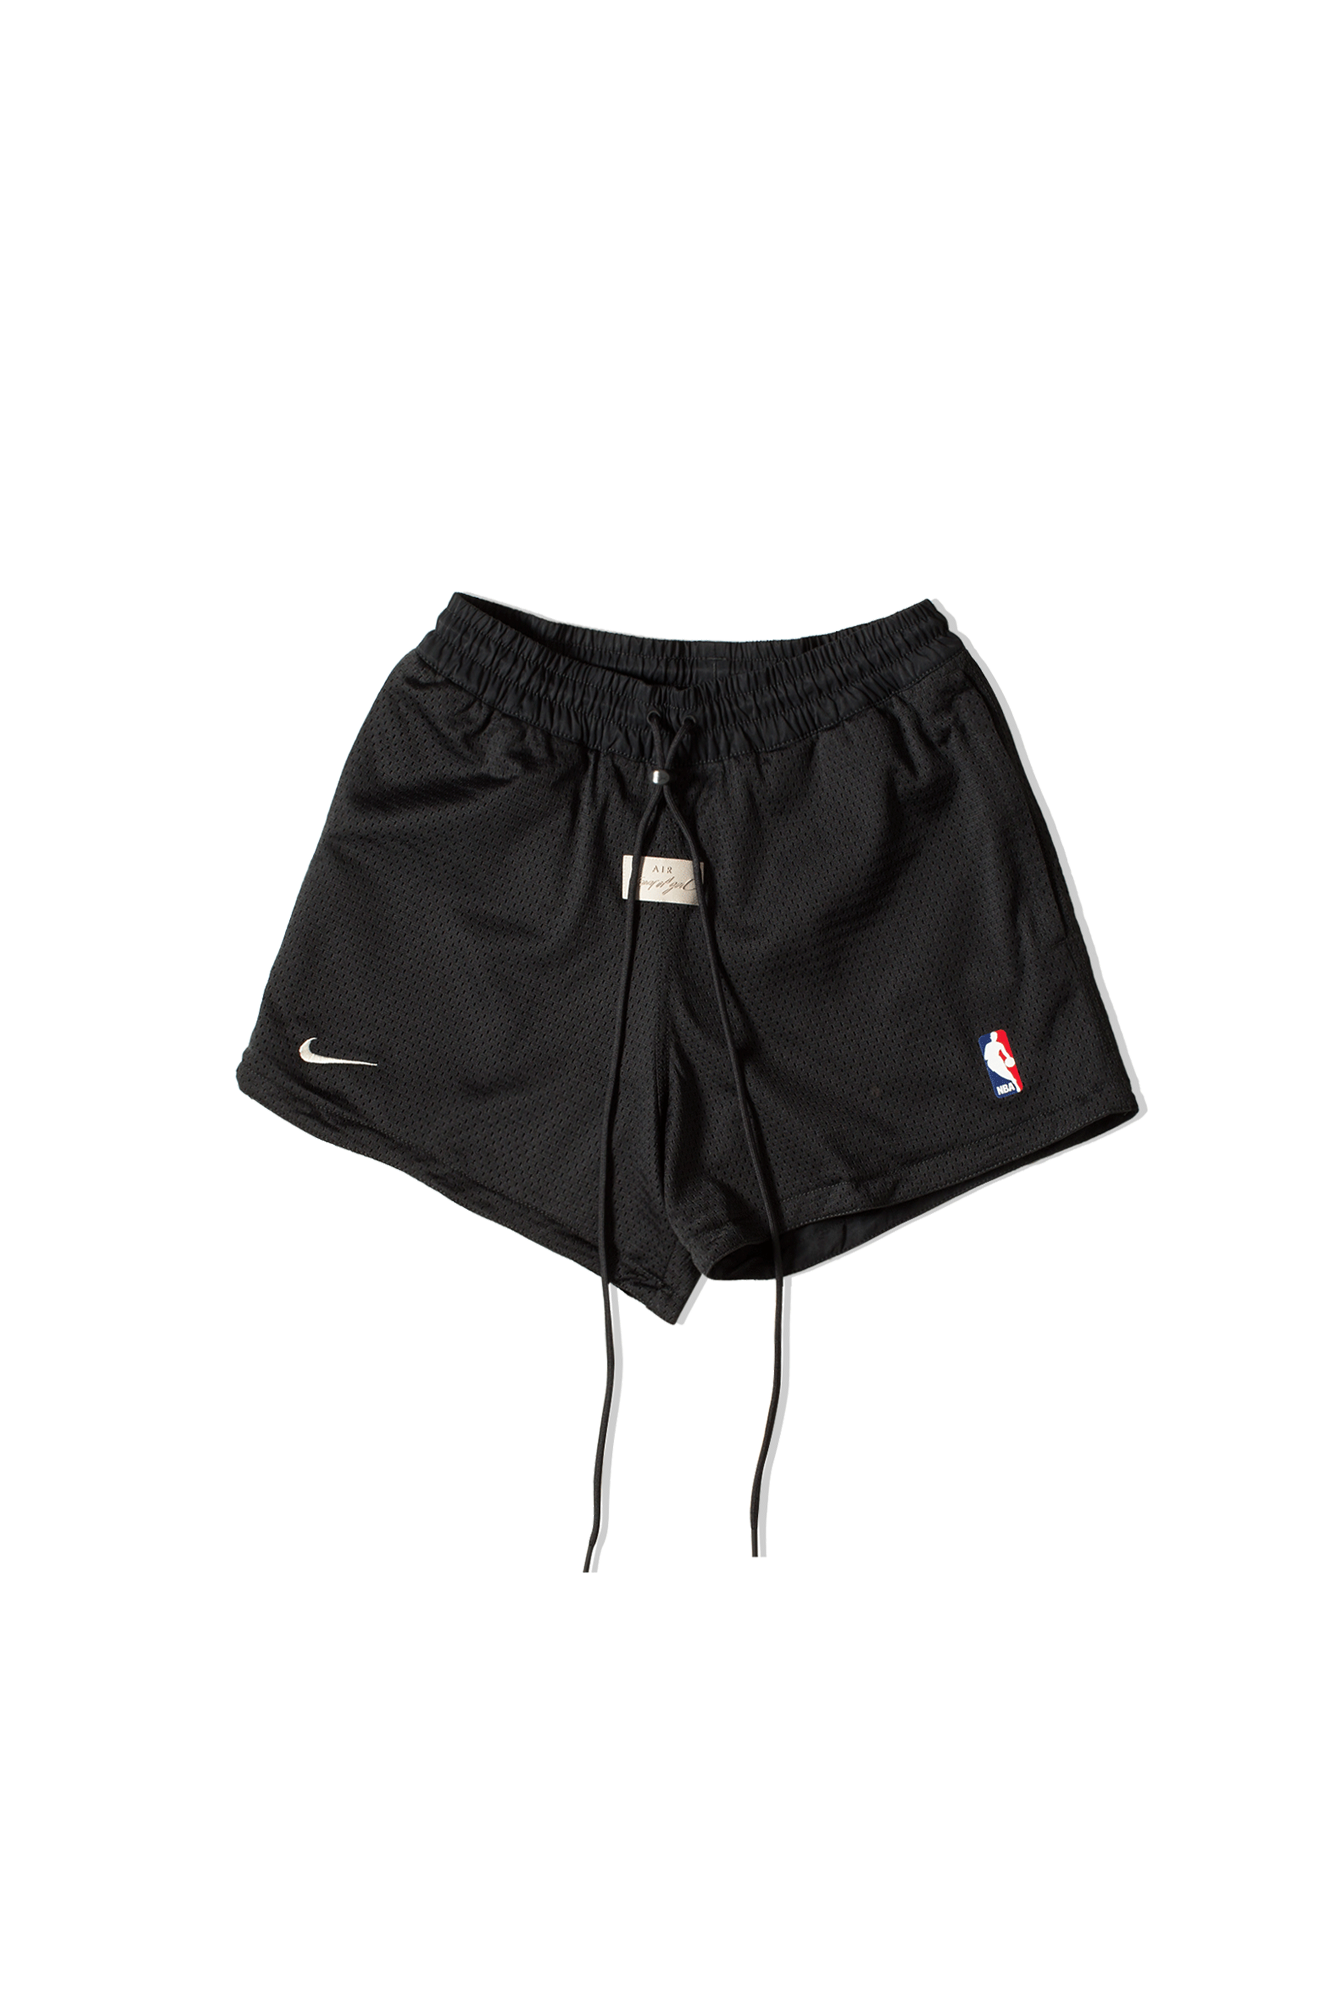 M NRG BasketBalls Shorts x Jerry Lorenzo Black